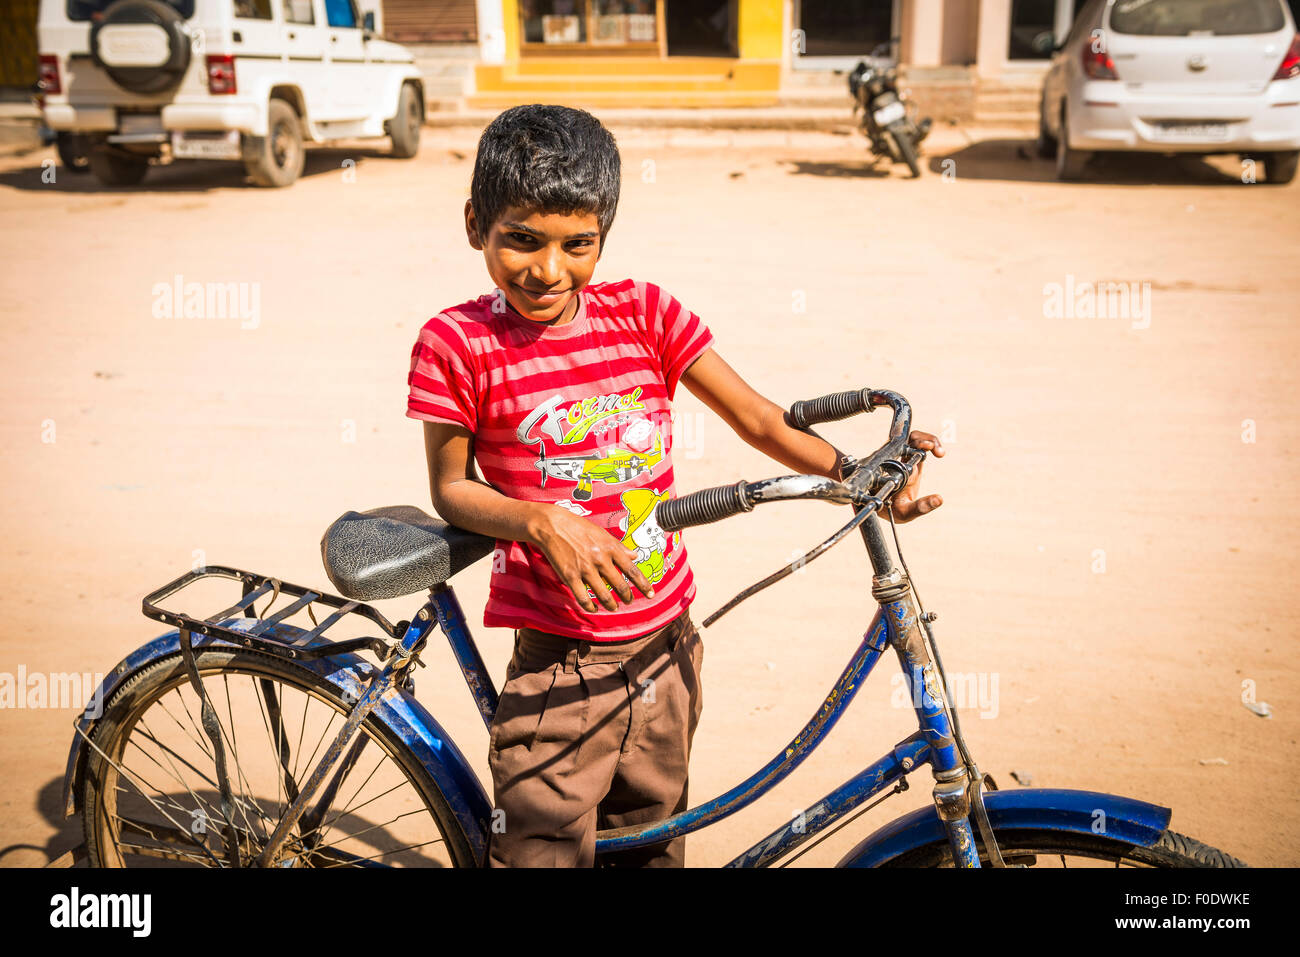 Portrait of a young Indian boy and his bicycle in Khajuraho, Madhya Pradesh, India - Stock Image